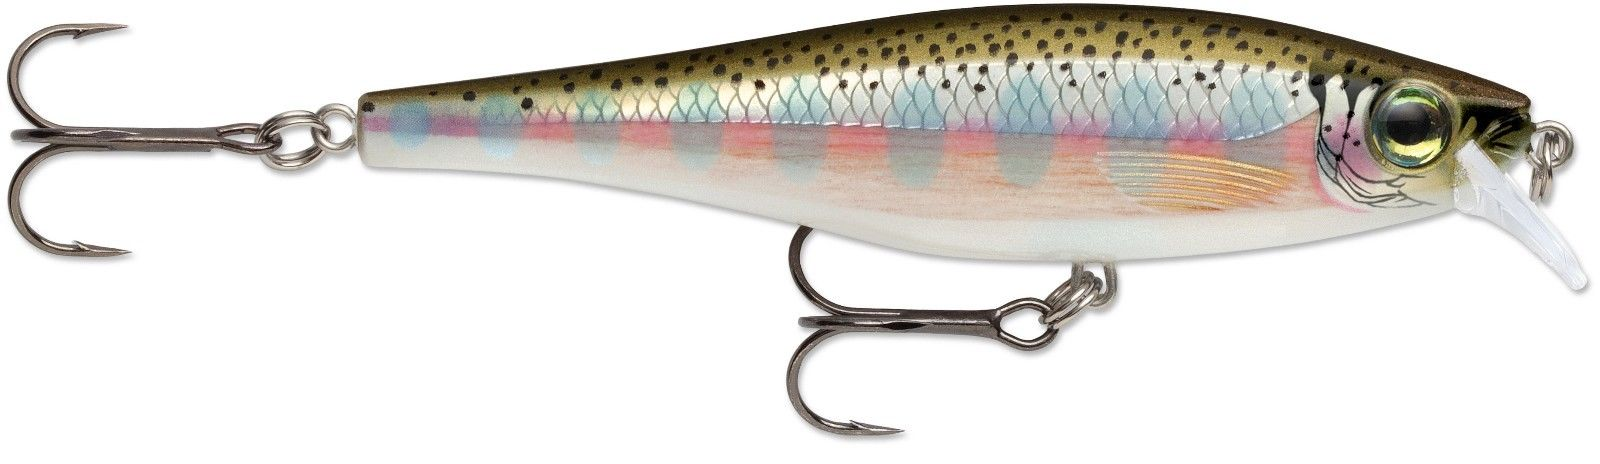 Rapala Balsa Xtreme BX Minnow 10 Medium Diving Jerkbait